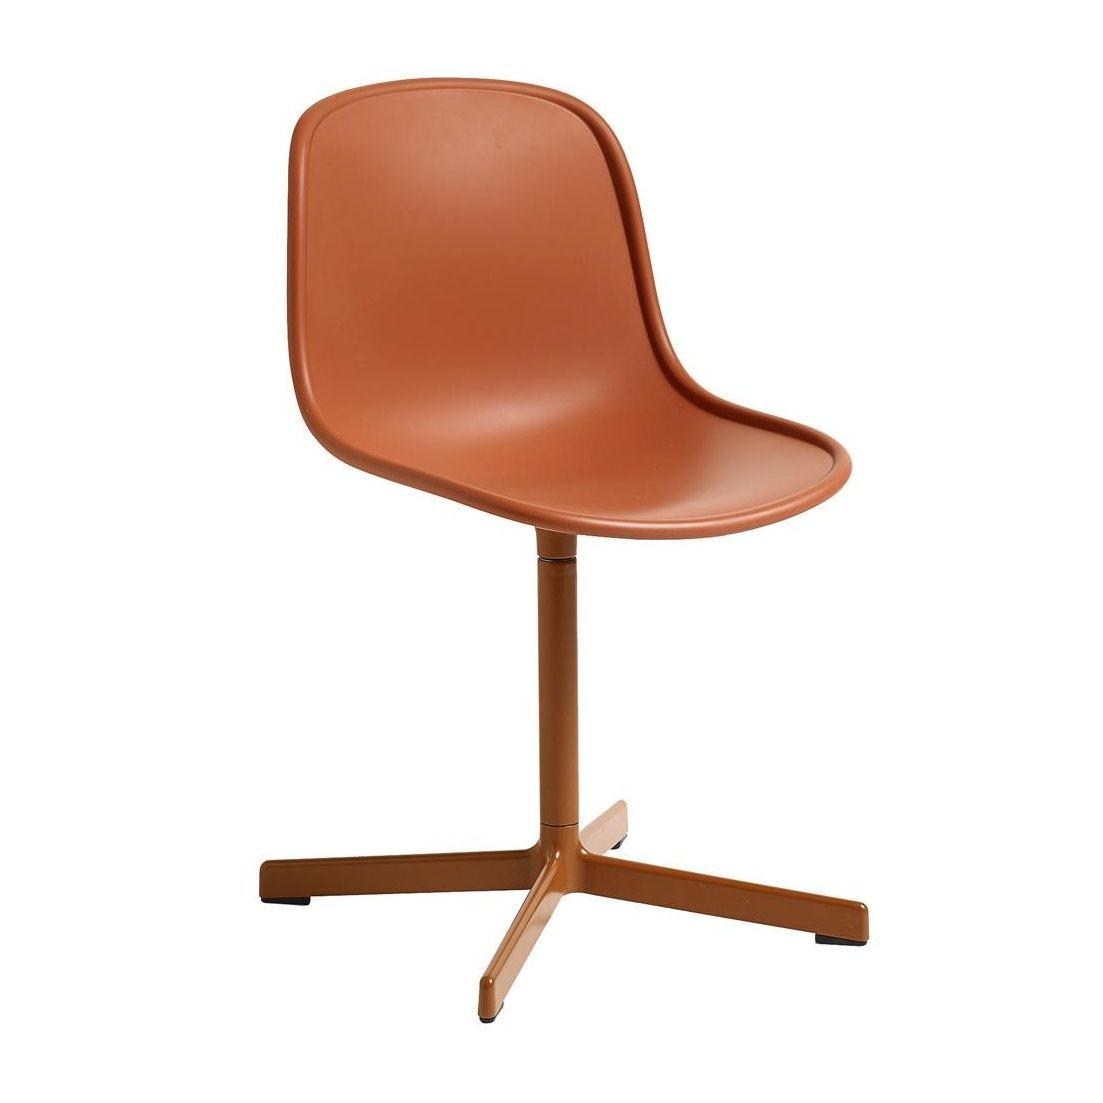 swivel chair price in bd design for cafe neu 10 hay ambientedirect